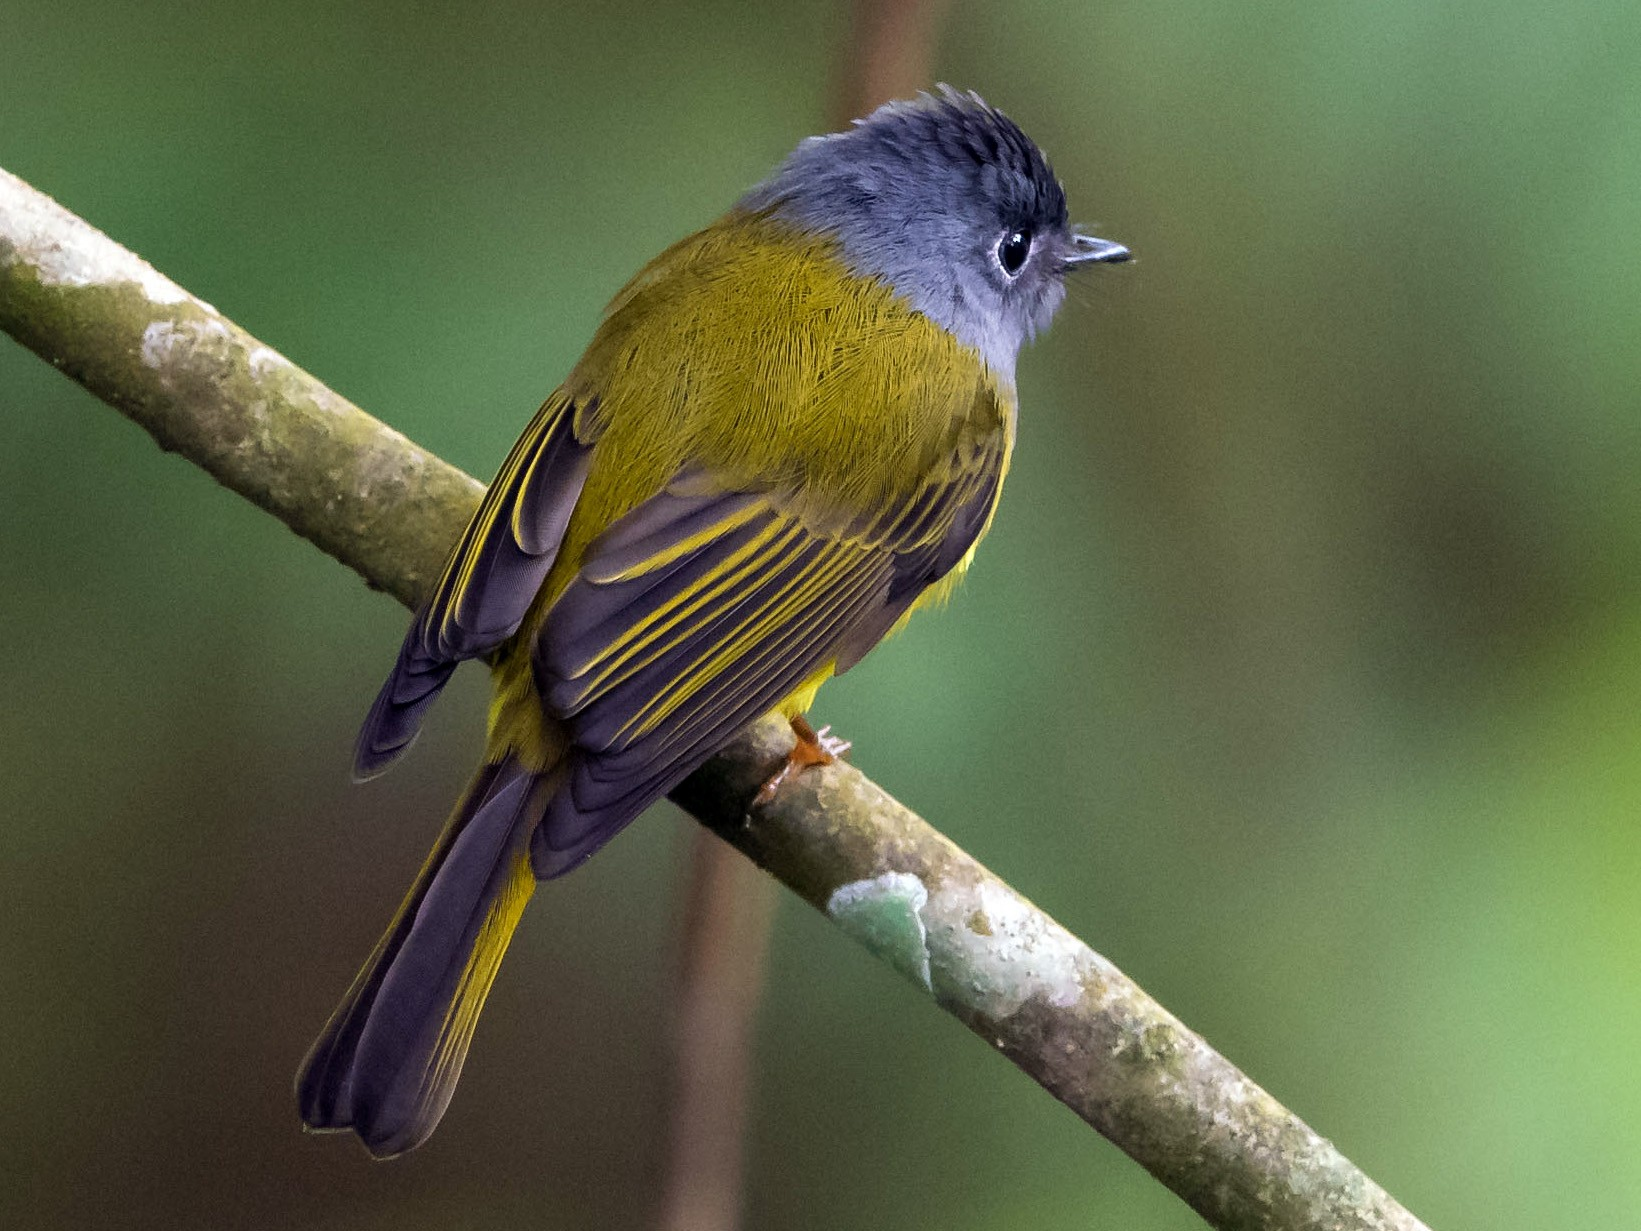 Gray-headed Canary-Flycatcher - Prashant Tewari